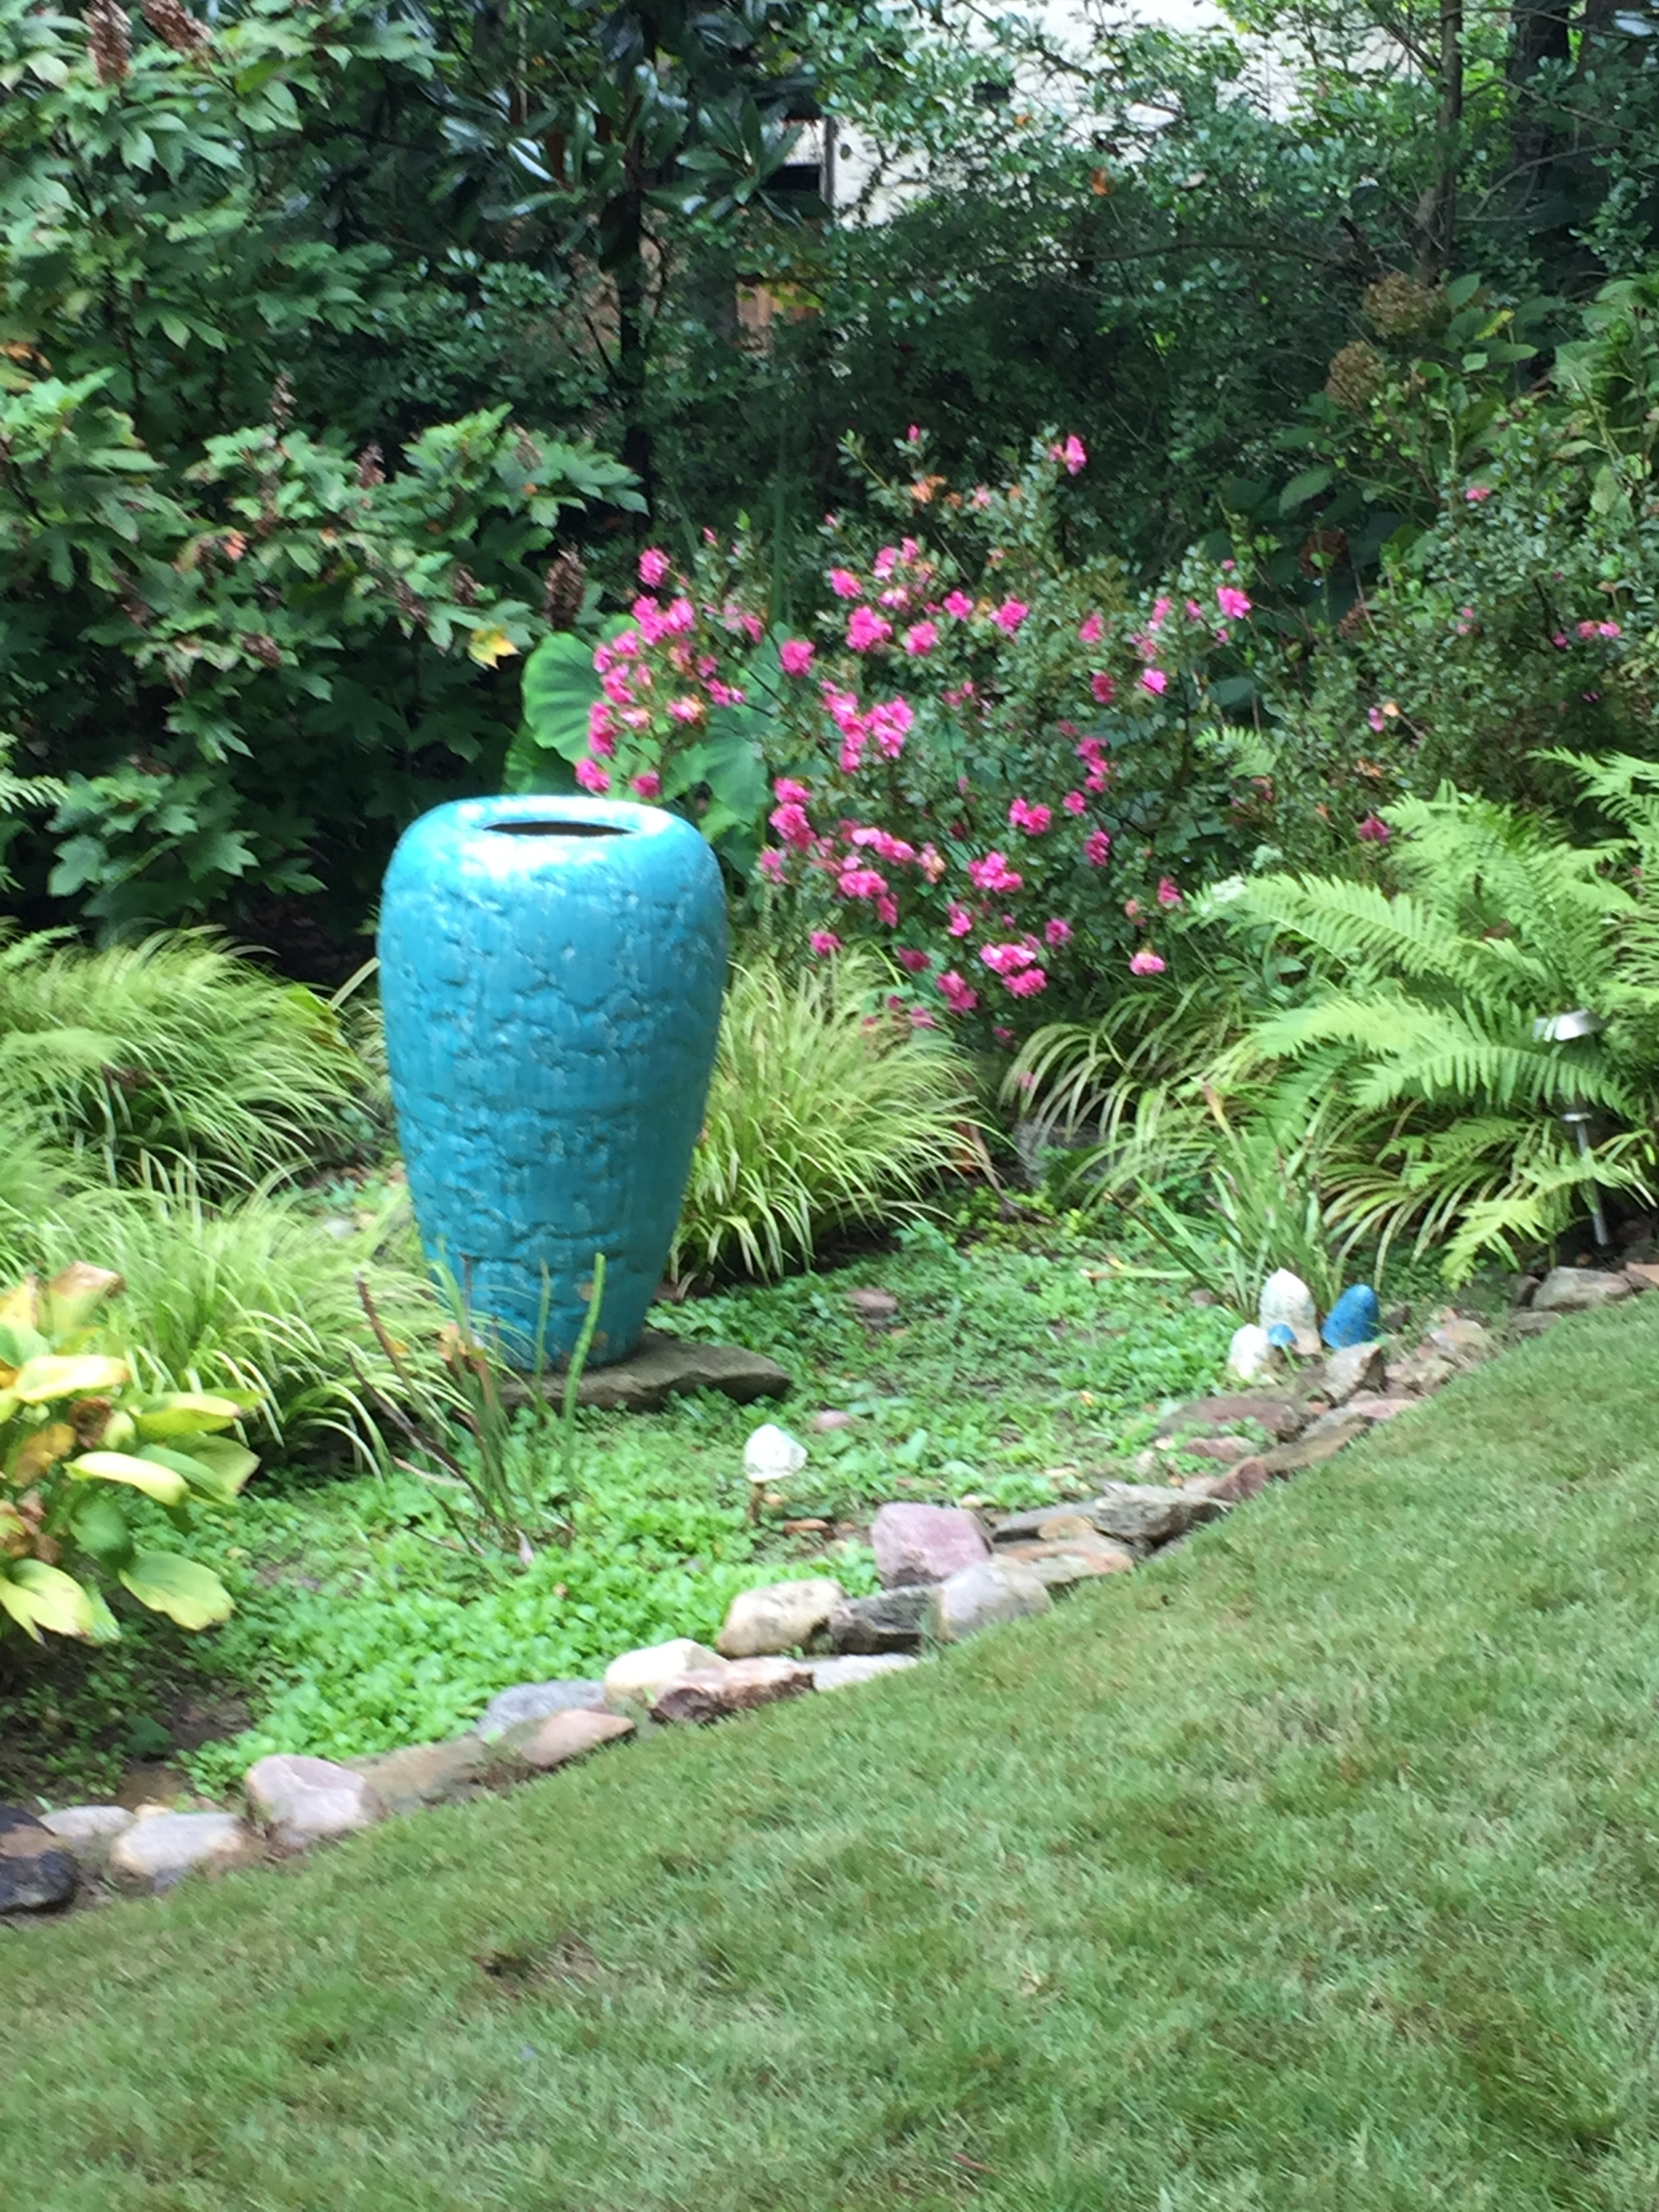 Colorful containers matched the blue frog elsewhere in the garden.